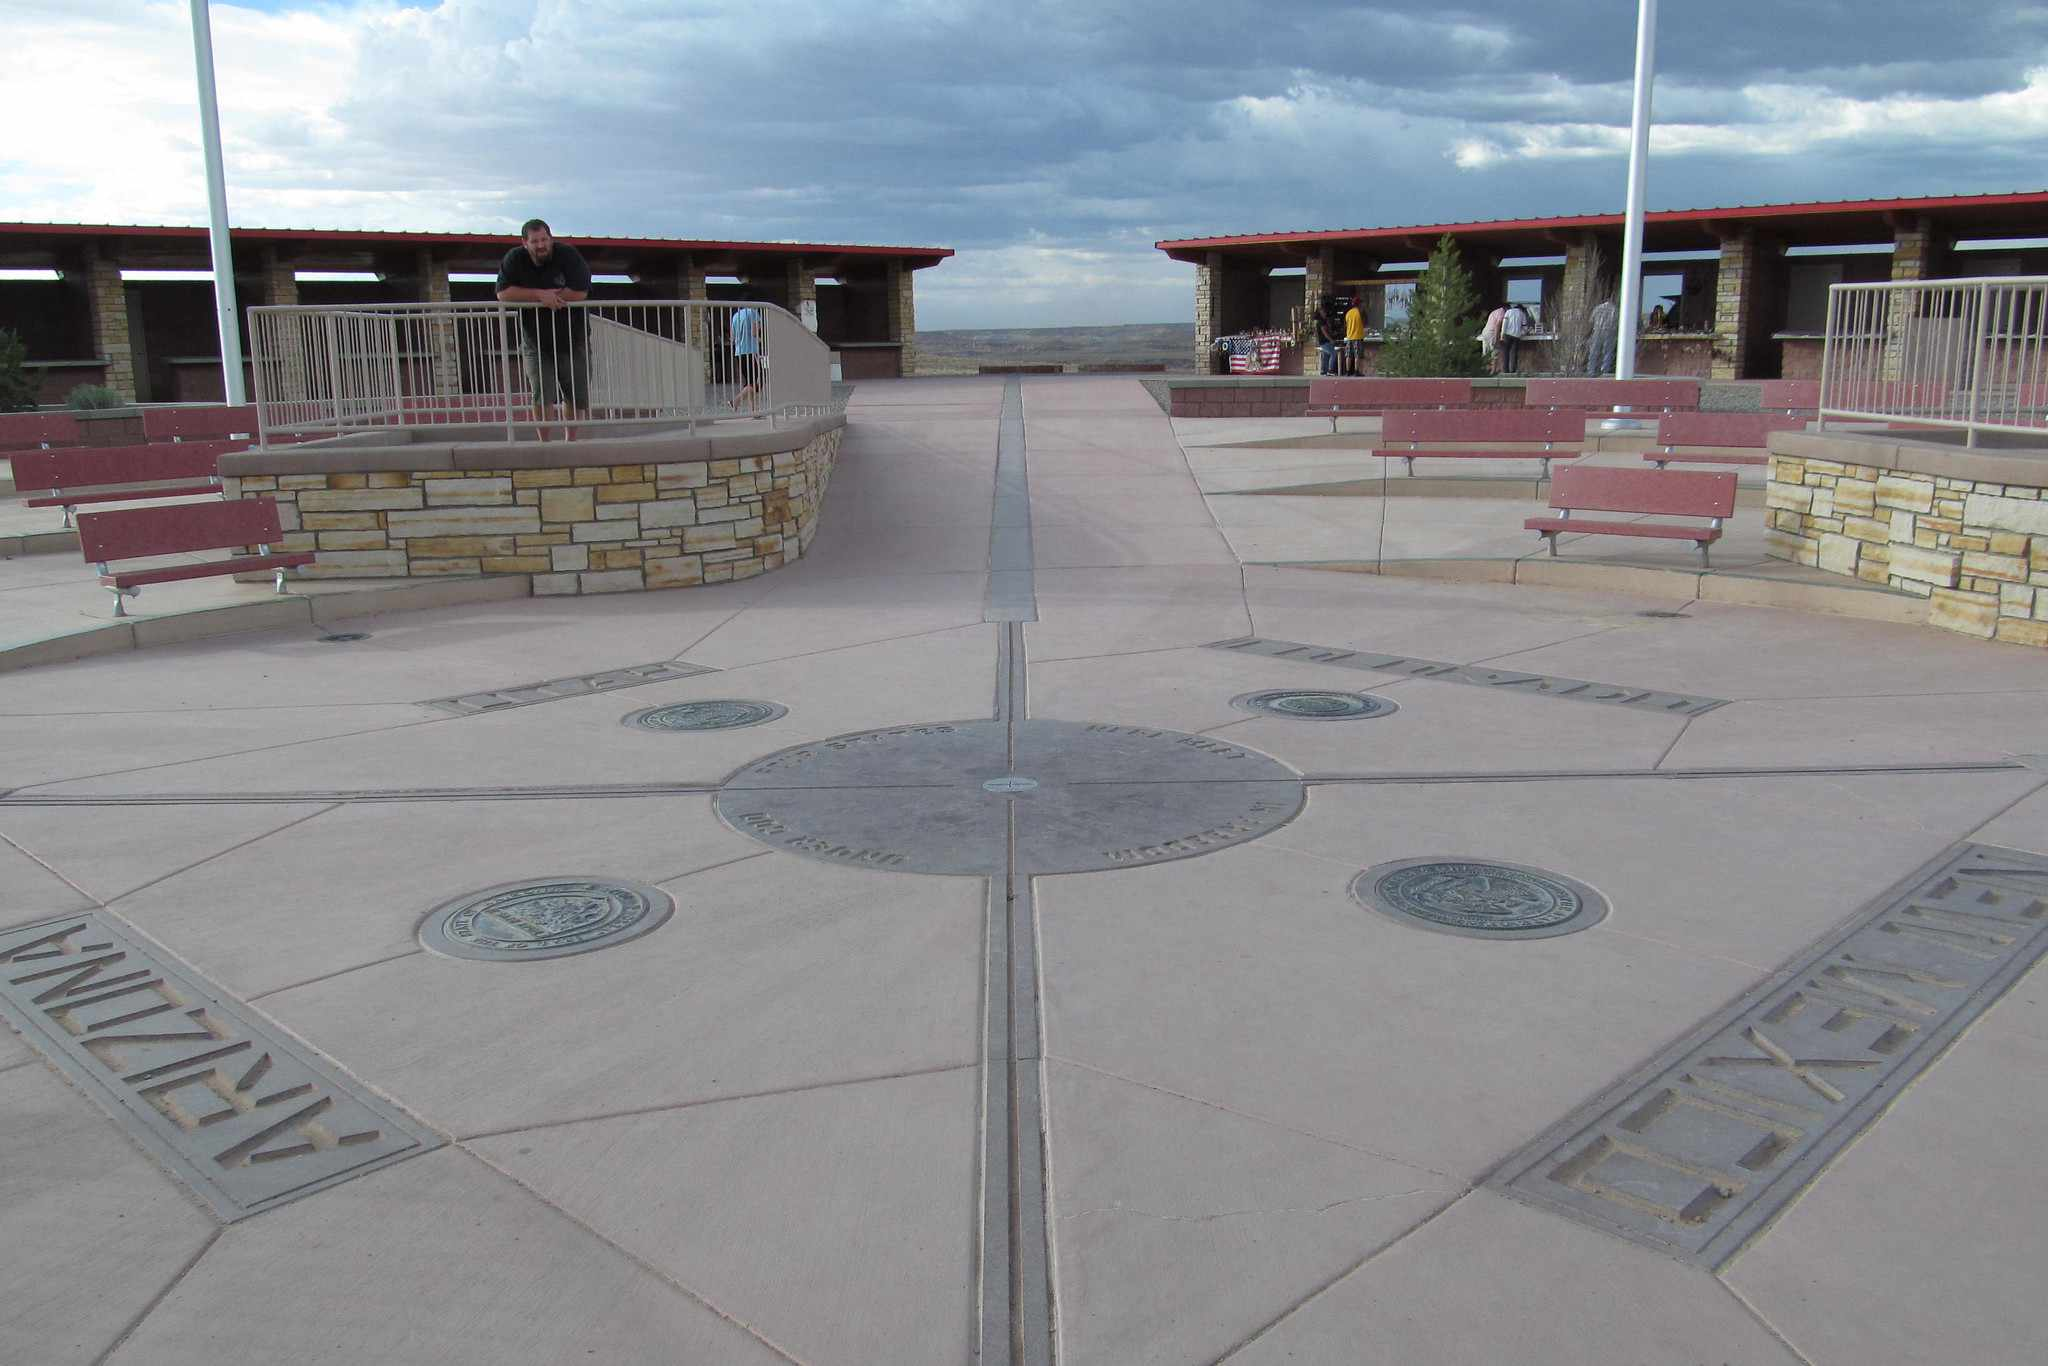 The ground split into four states at Four Corners Monument